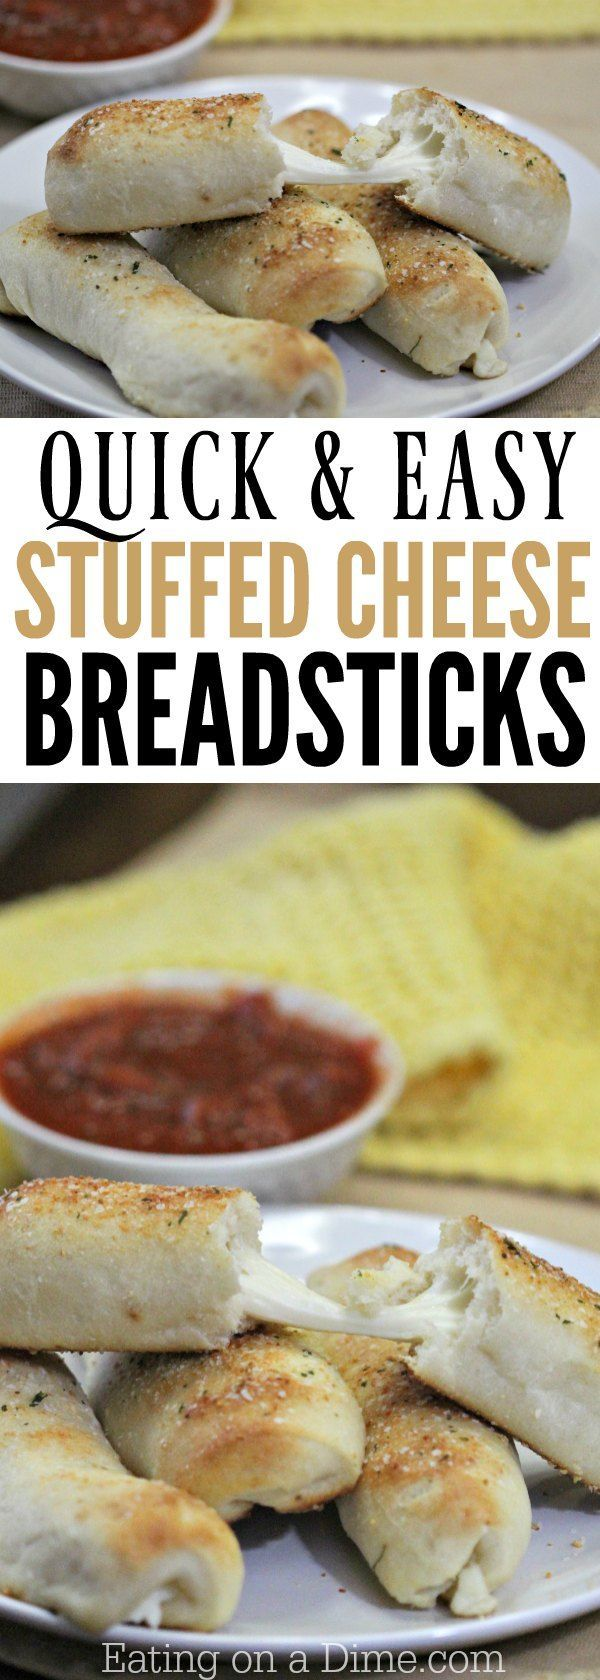 Everyone will love when you serve this Garlic Bread Cheese Sticks Recipe. Garlic bread meets cheese sticks to a delicious breadstick stuffed with cheese. Your new favorite appetizer recipe!